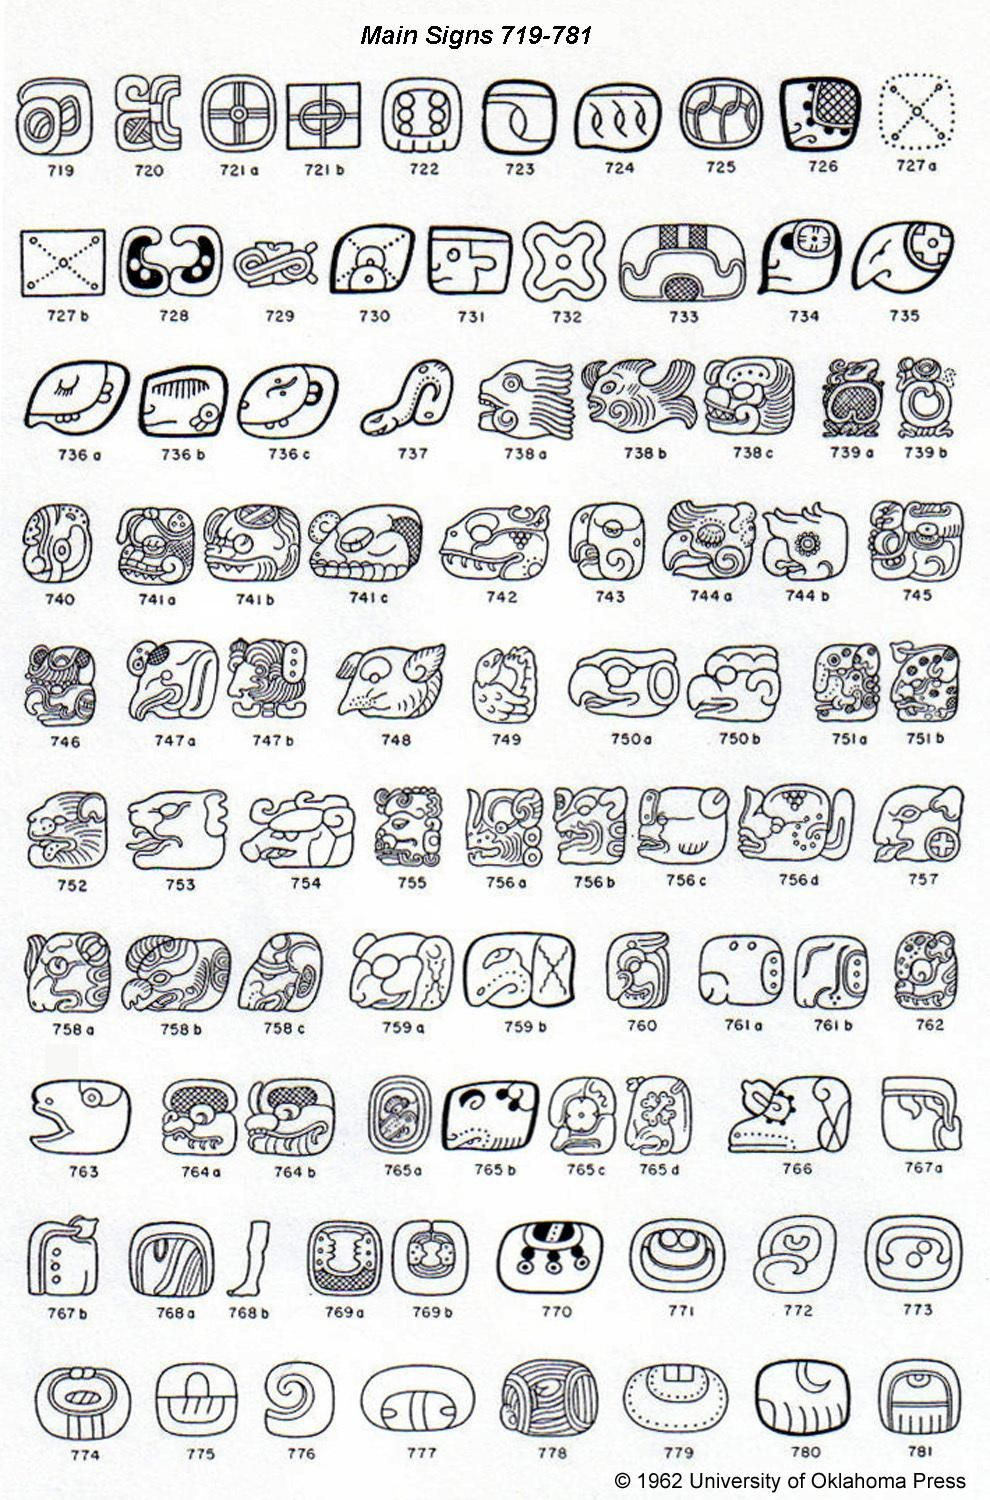 Pg hieroglyphic symbols 6d87782fc93ce50873c7d29600373503 large choose your mayan glyphs for napkins gifts talisman cultural weddings and celebrations quora be creative have a mayan wedding and use your imagination biocorpaavc